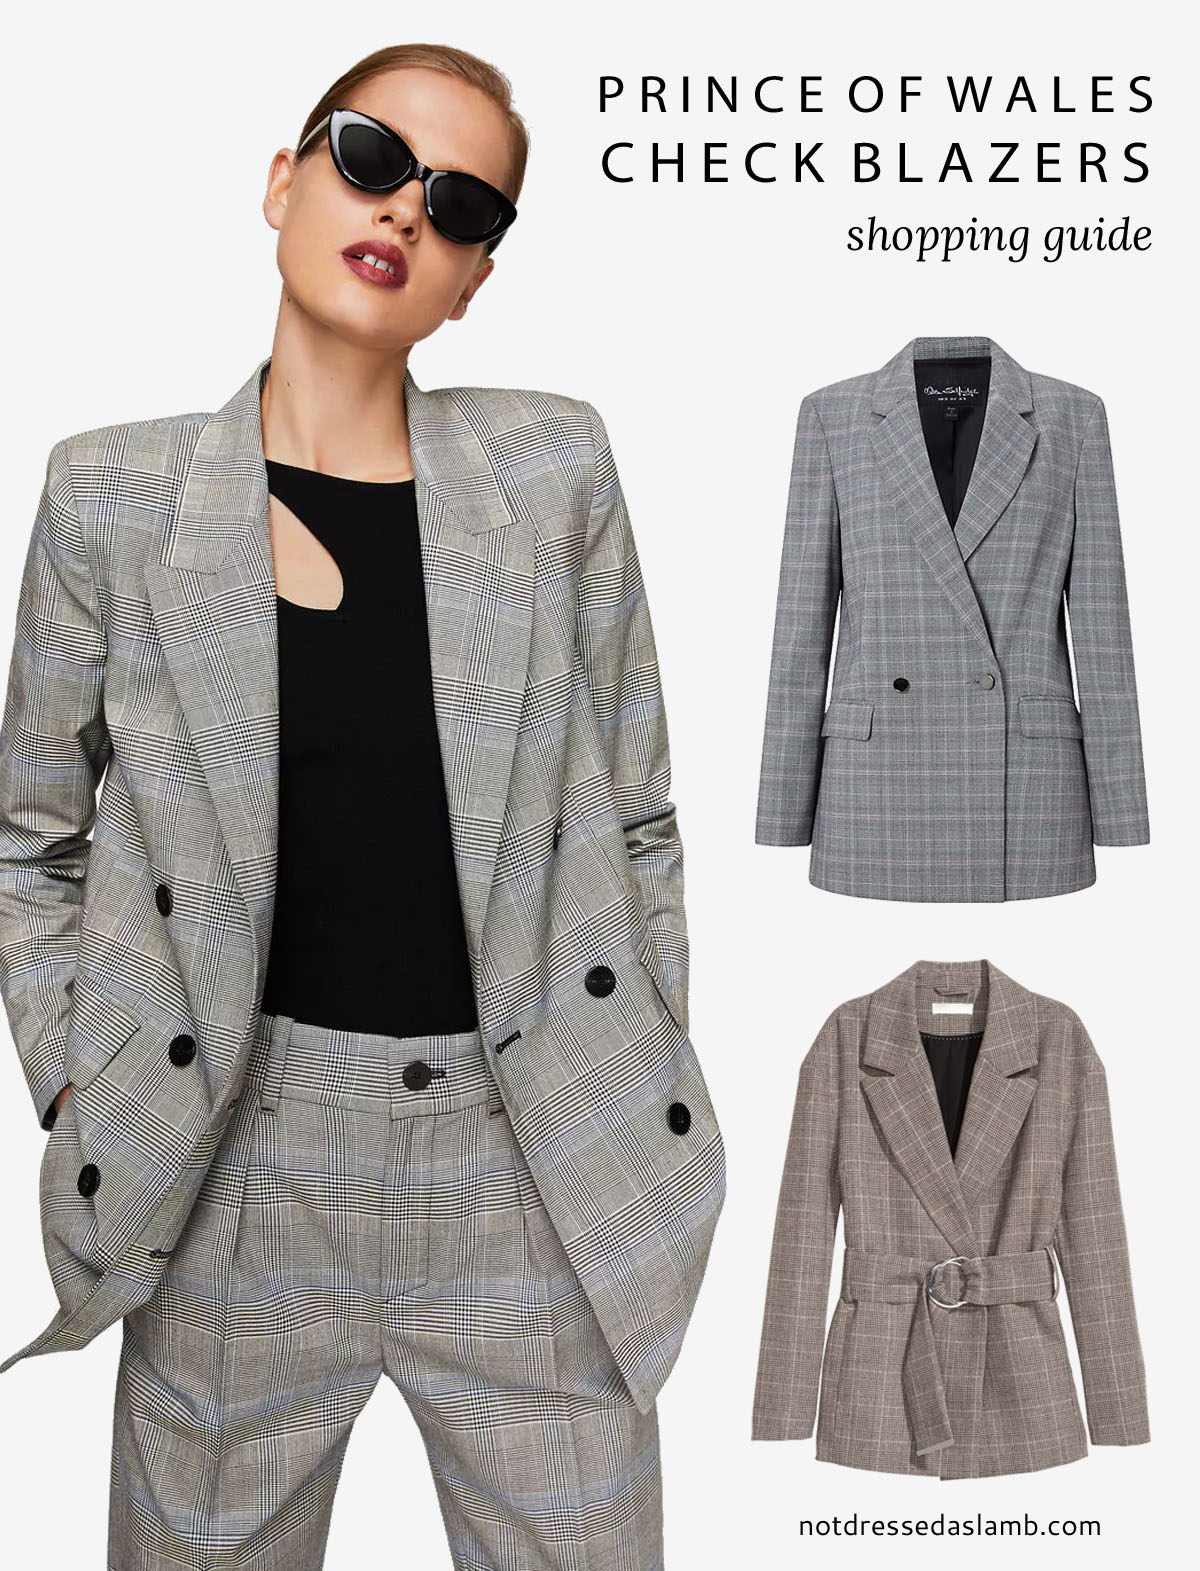 3 must-have pieces to shop this autumn/fall/winter: White boots Prince of Wales check plaid blazers velvet - AW17 trends | Not Dressed As Lamb